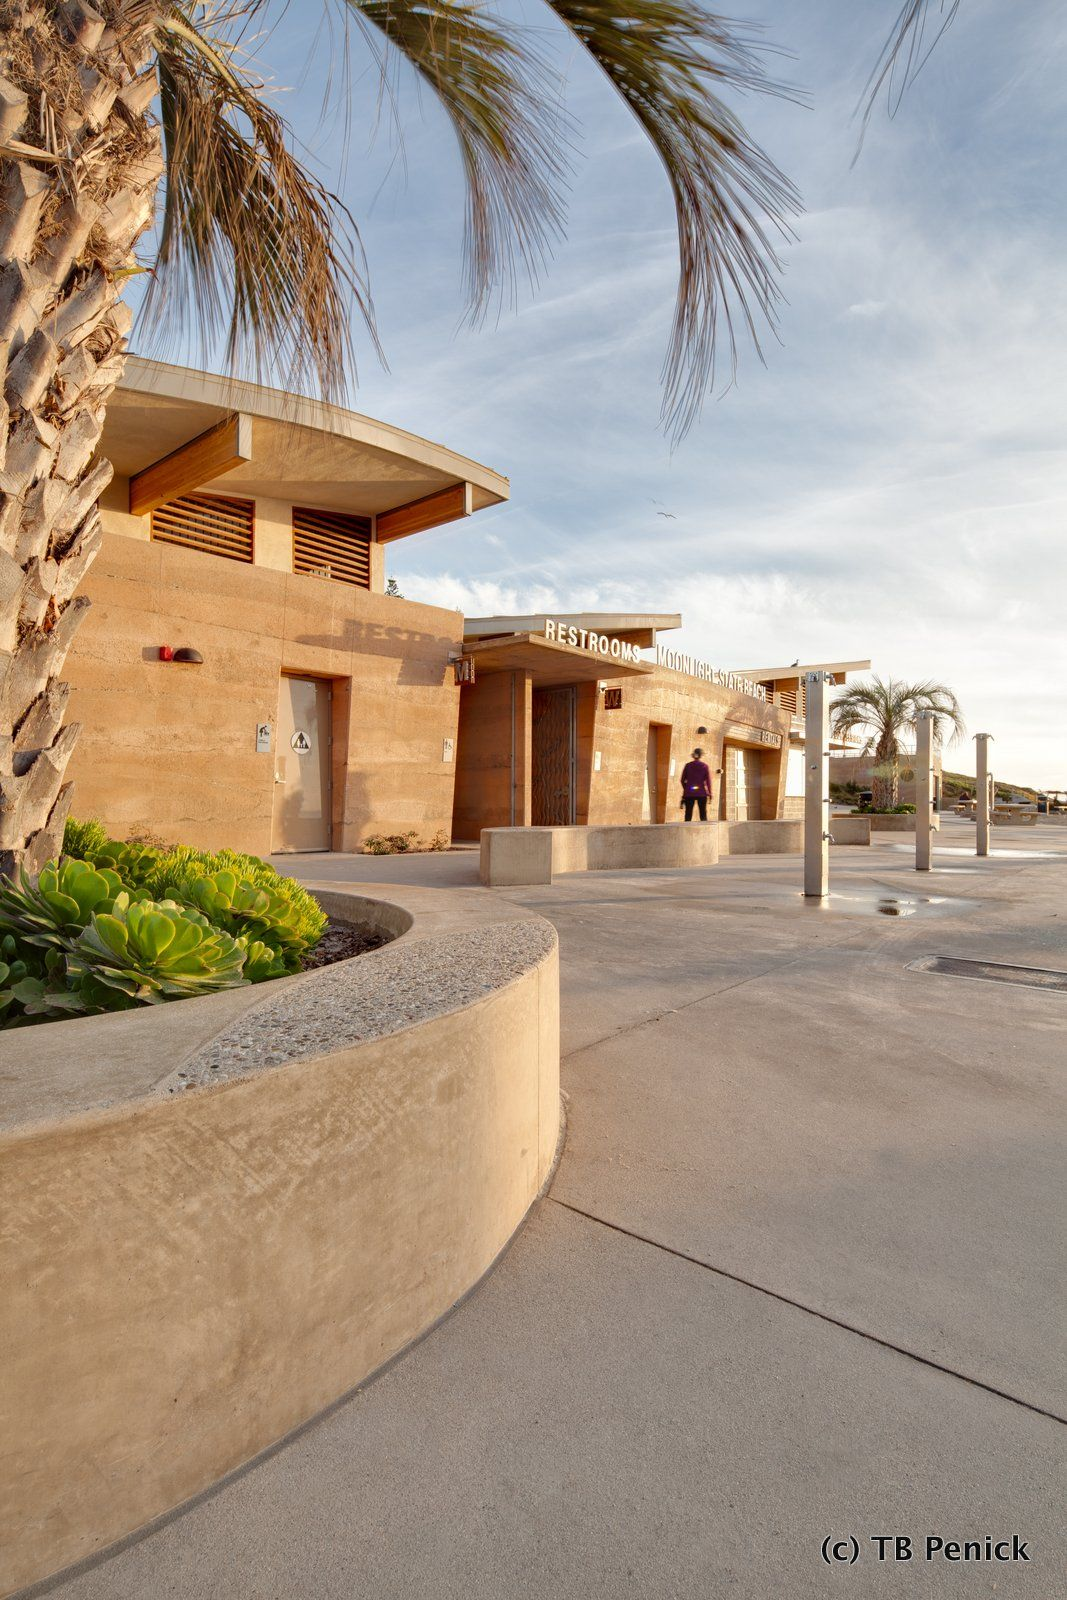 Decorative Concrete Sedimentary Walls Installed By Dcc Member Tb Penick At Moonlight Beach In California Concrete Decor Exterior Decorative House Styles